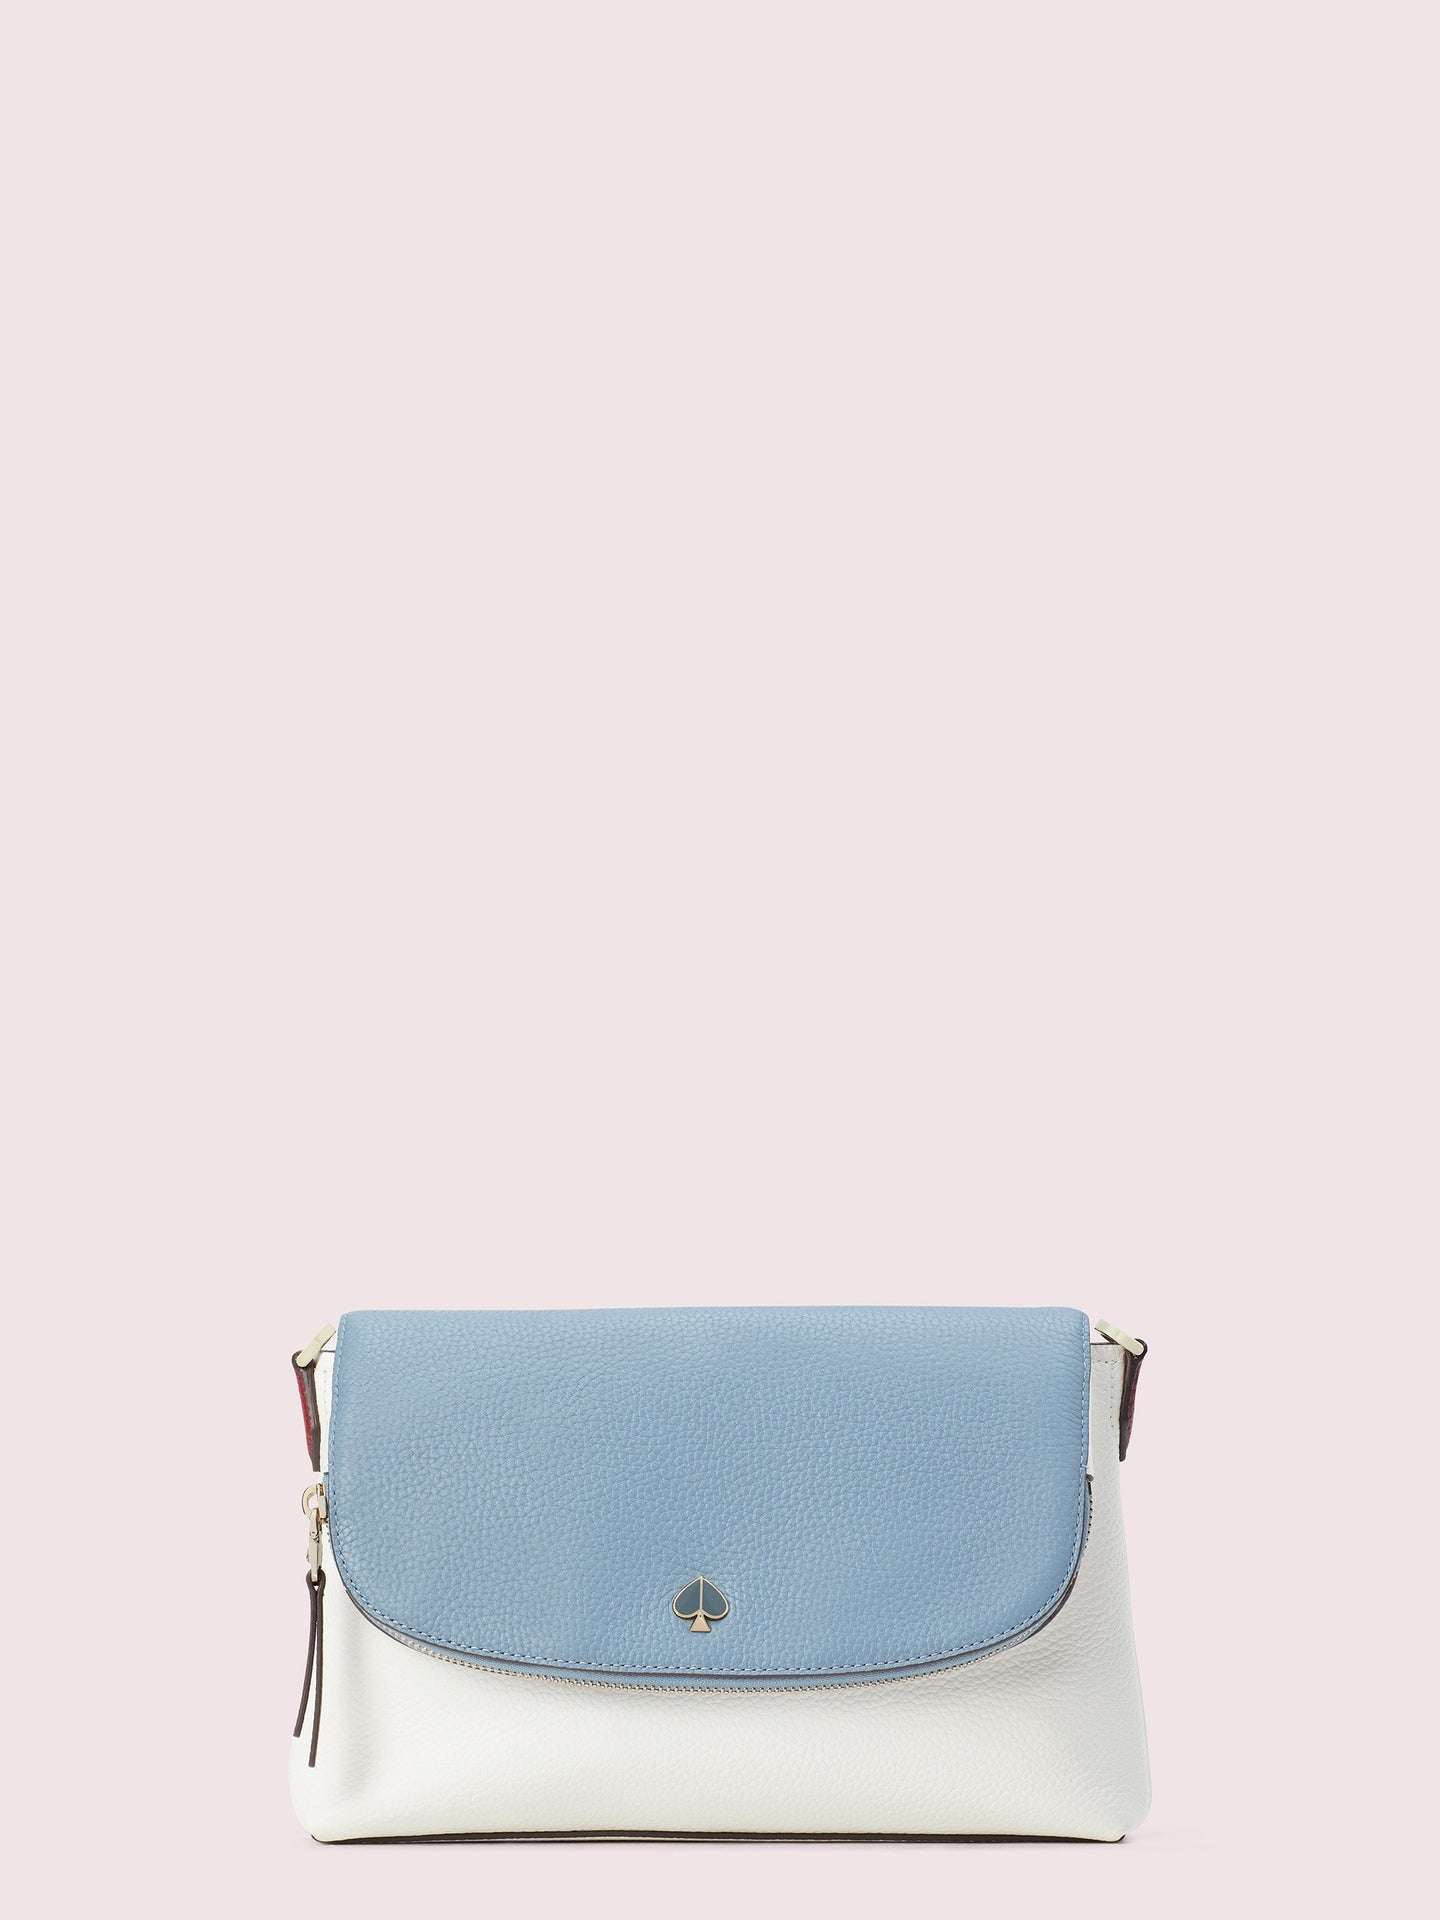 POLLY LARGE CONVERTIBLE CROSSBODY